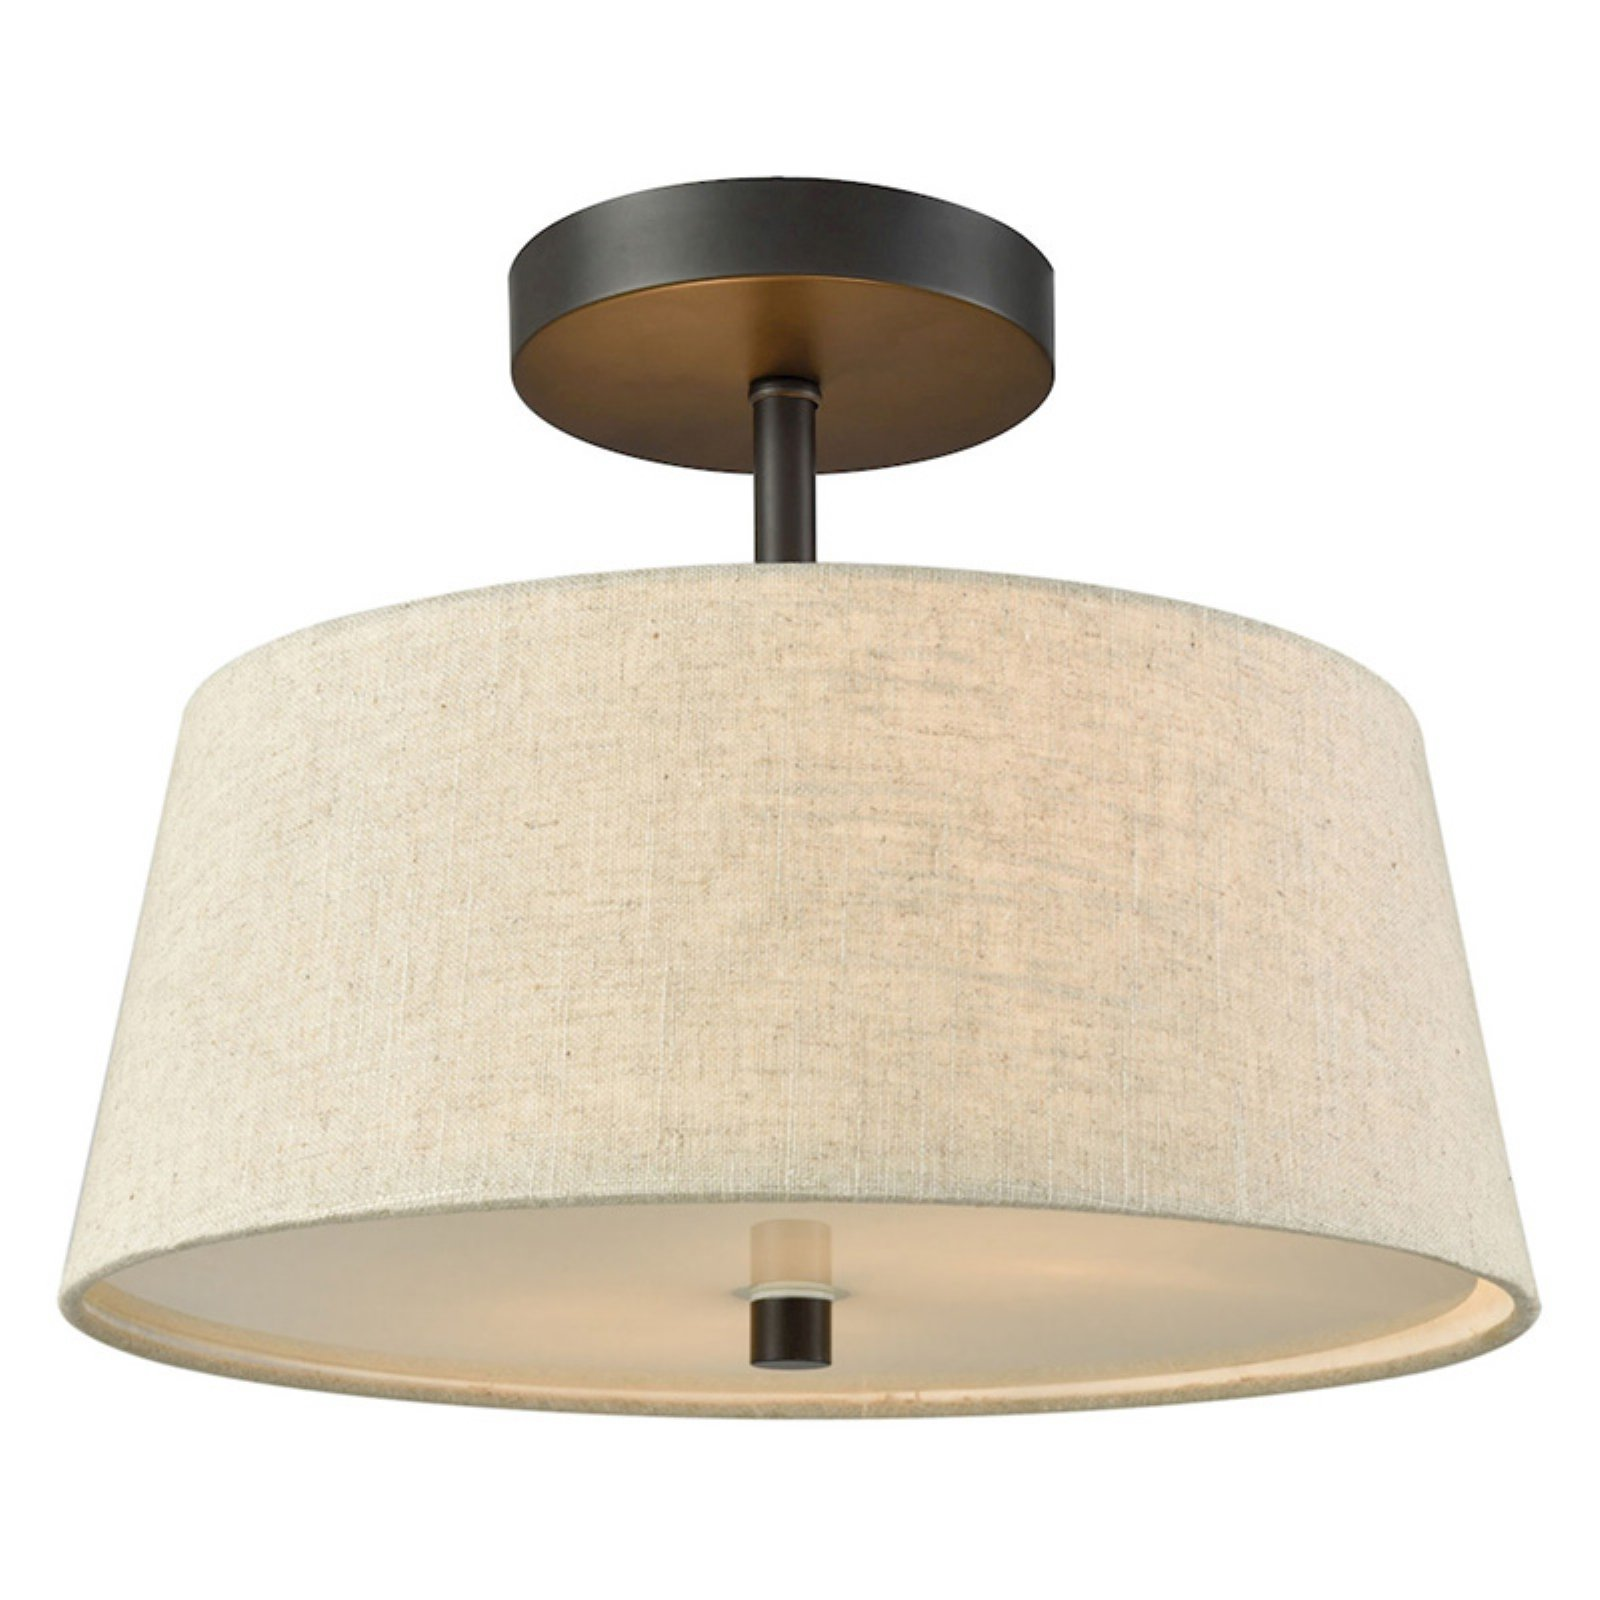 Thomas Lighting Morgan Drum Semi-Flush Mount Light by Thomas Lighting